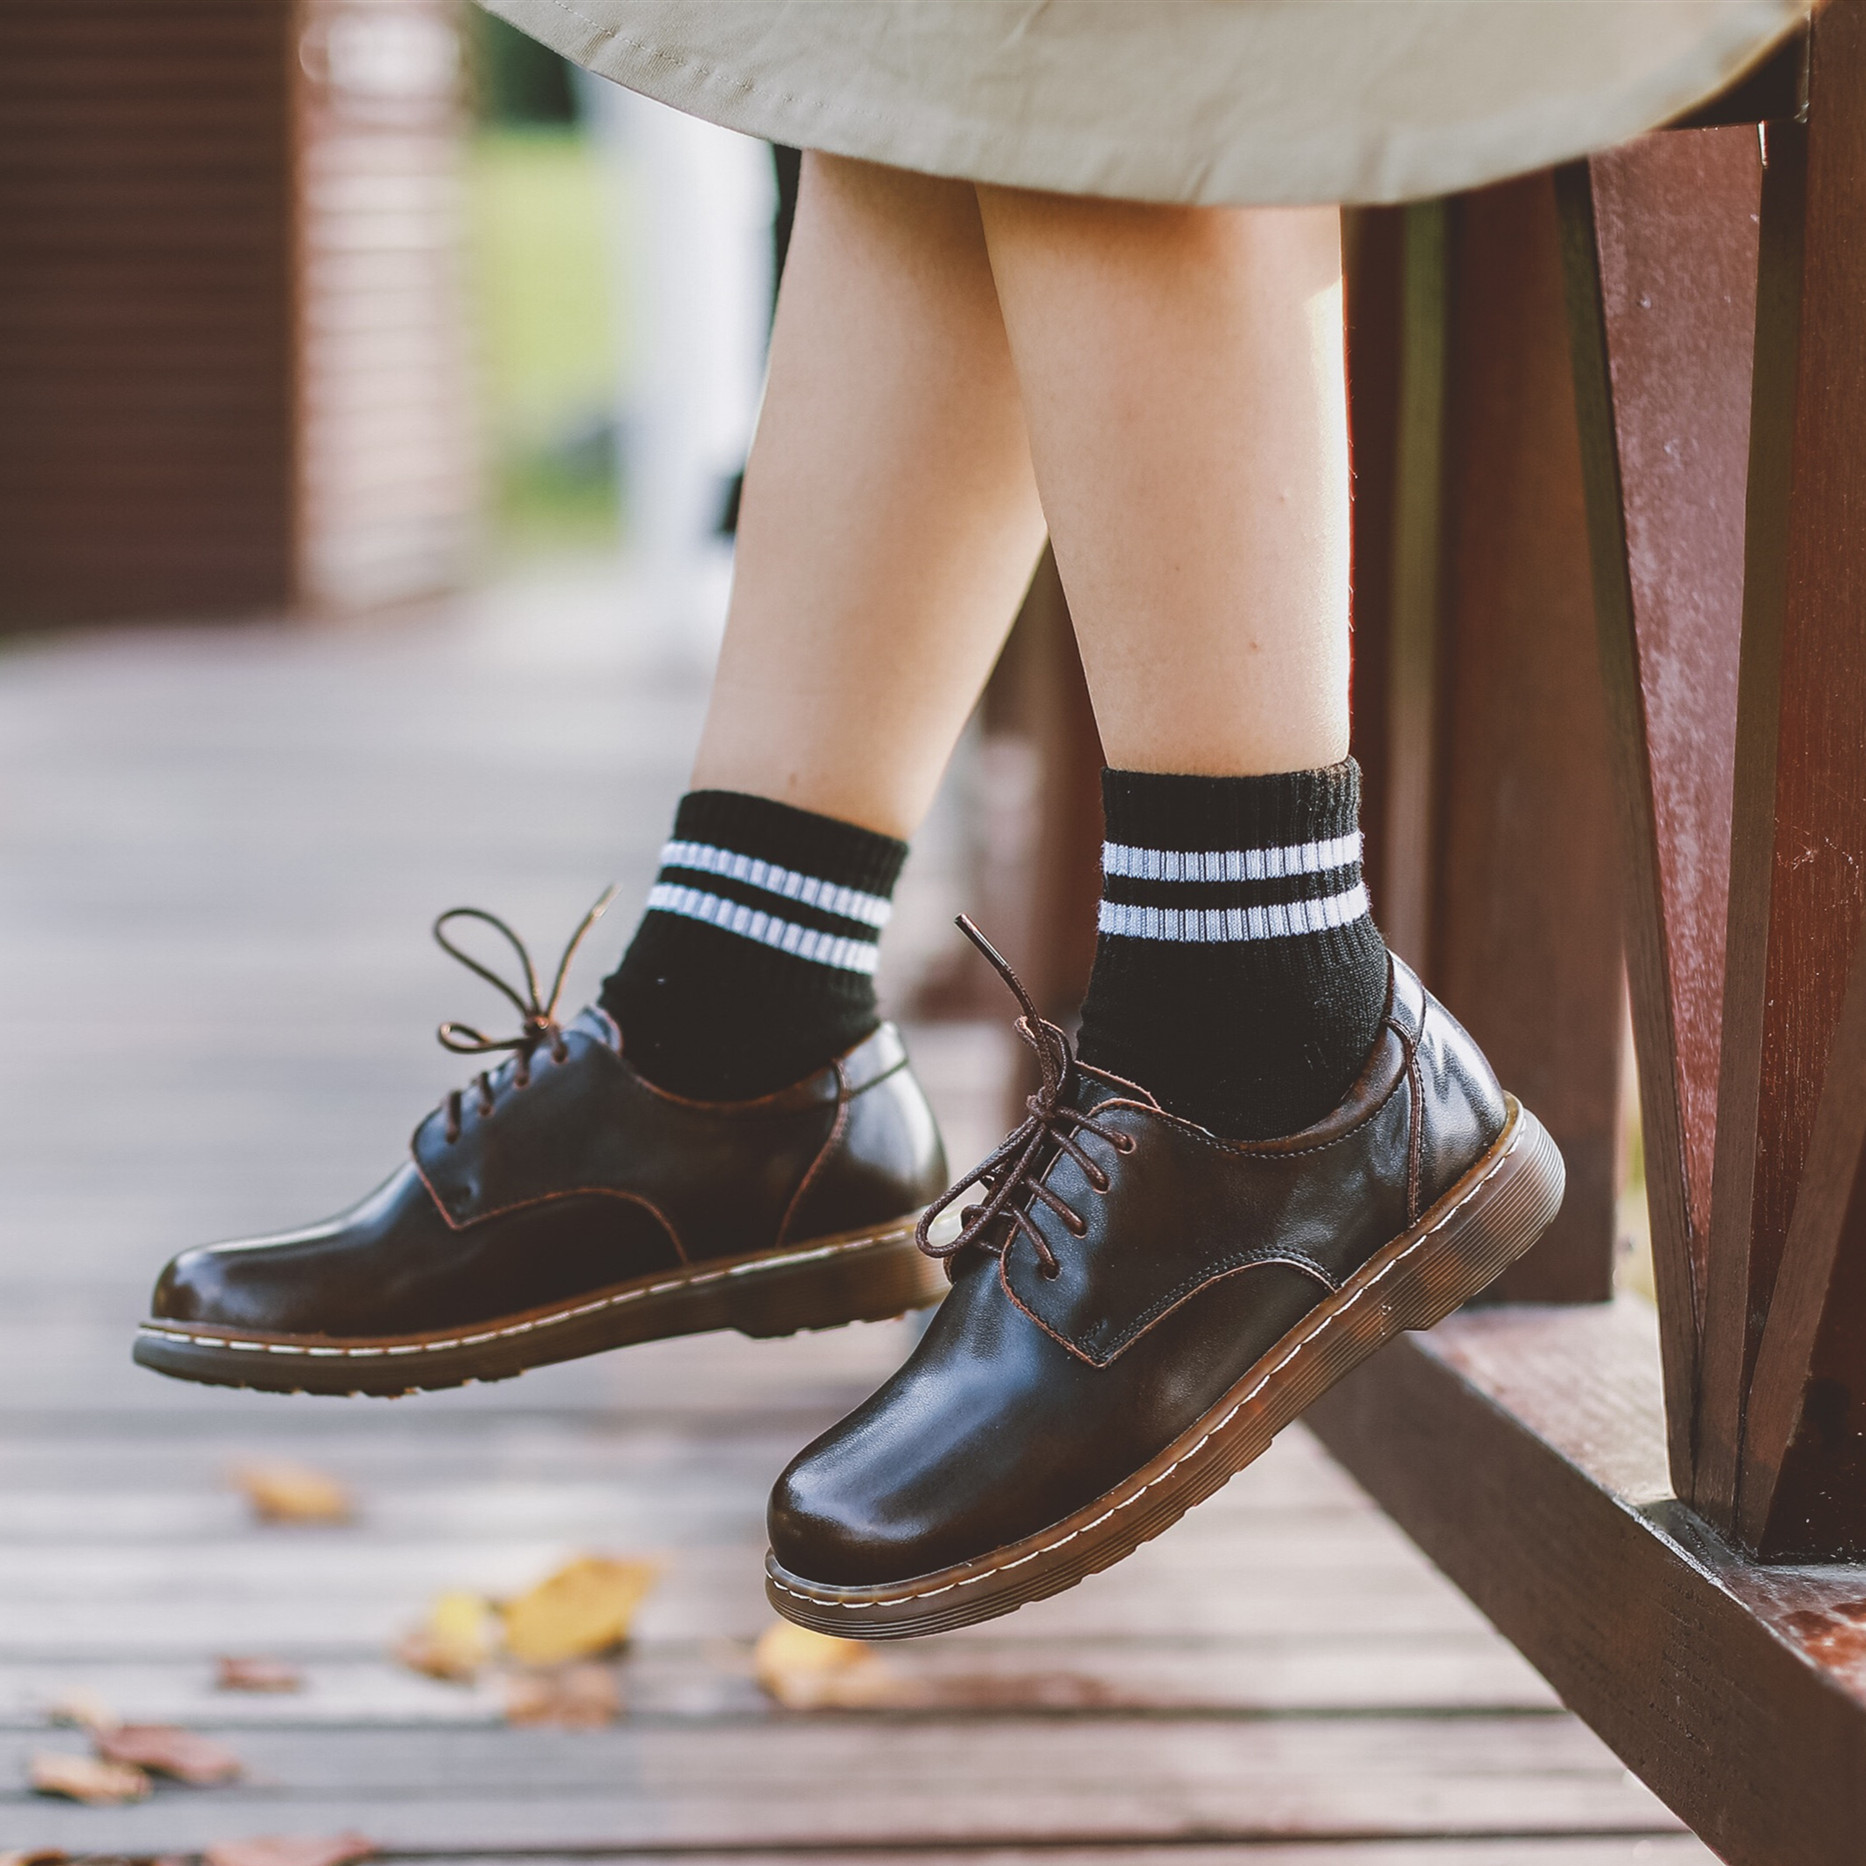 Ins retro brown leather shoes literary retro soft cute square toe Oxford Shoes British style lace up Martin shoes